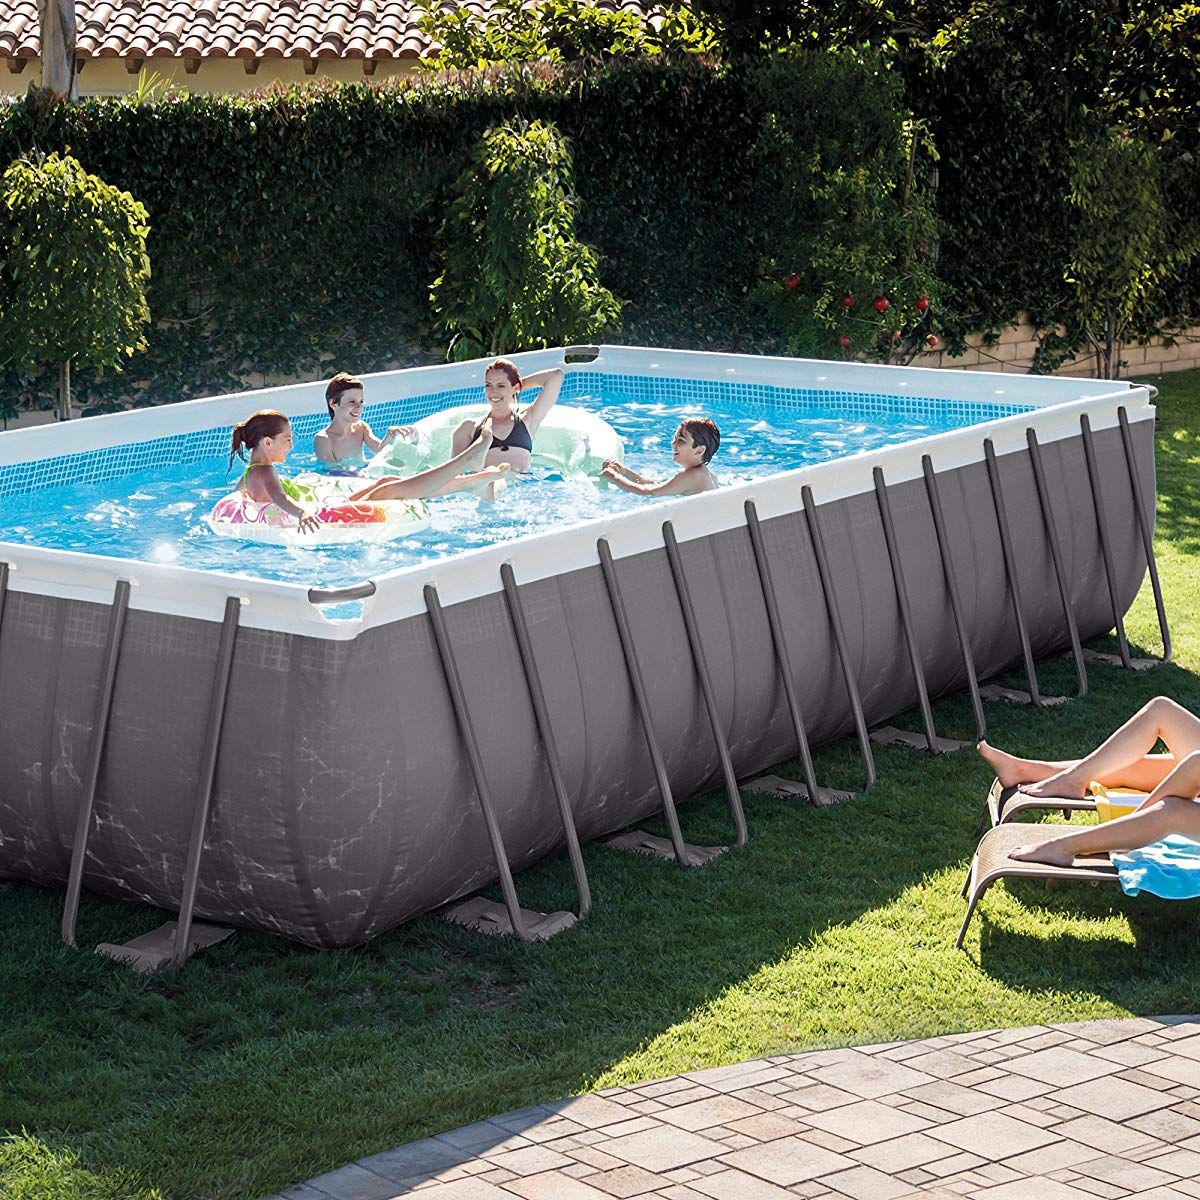 Intex 24 Foot By 12 Foot By 52 Inch Rectangular Ultra Frame Pool